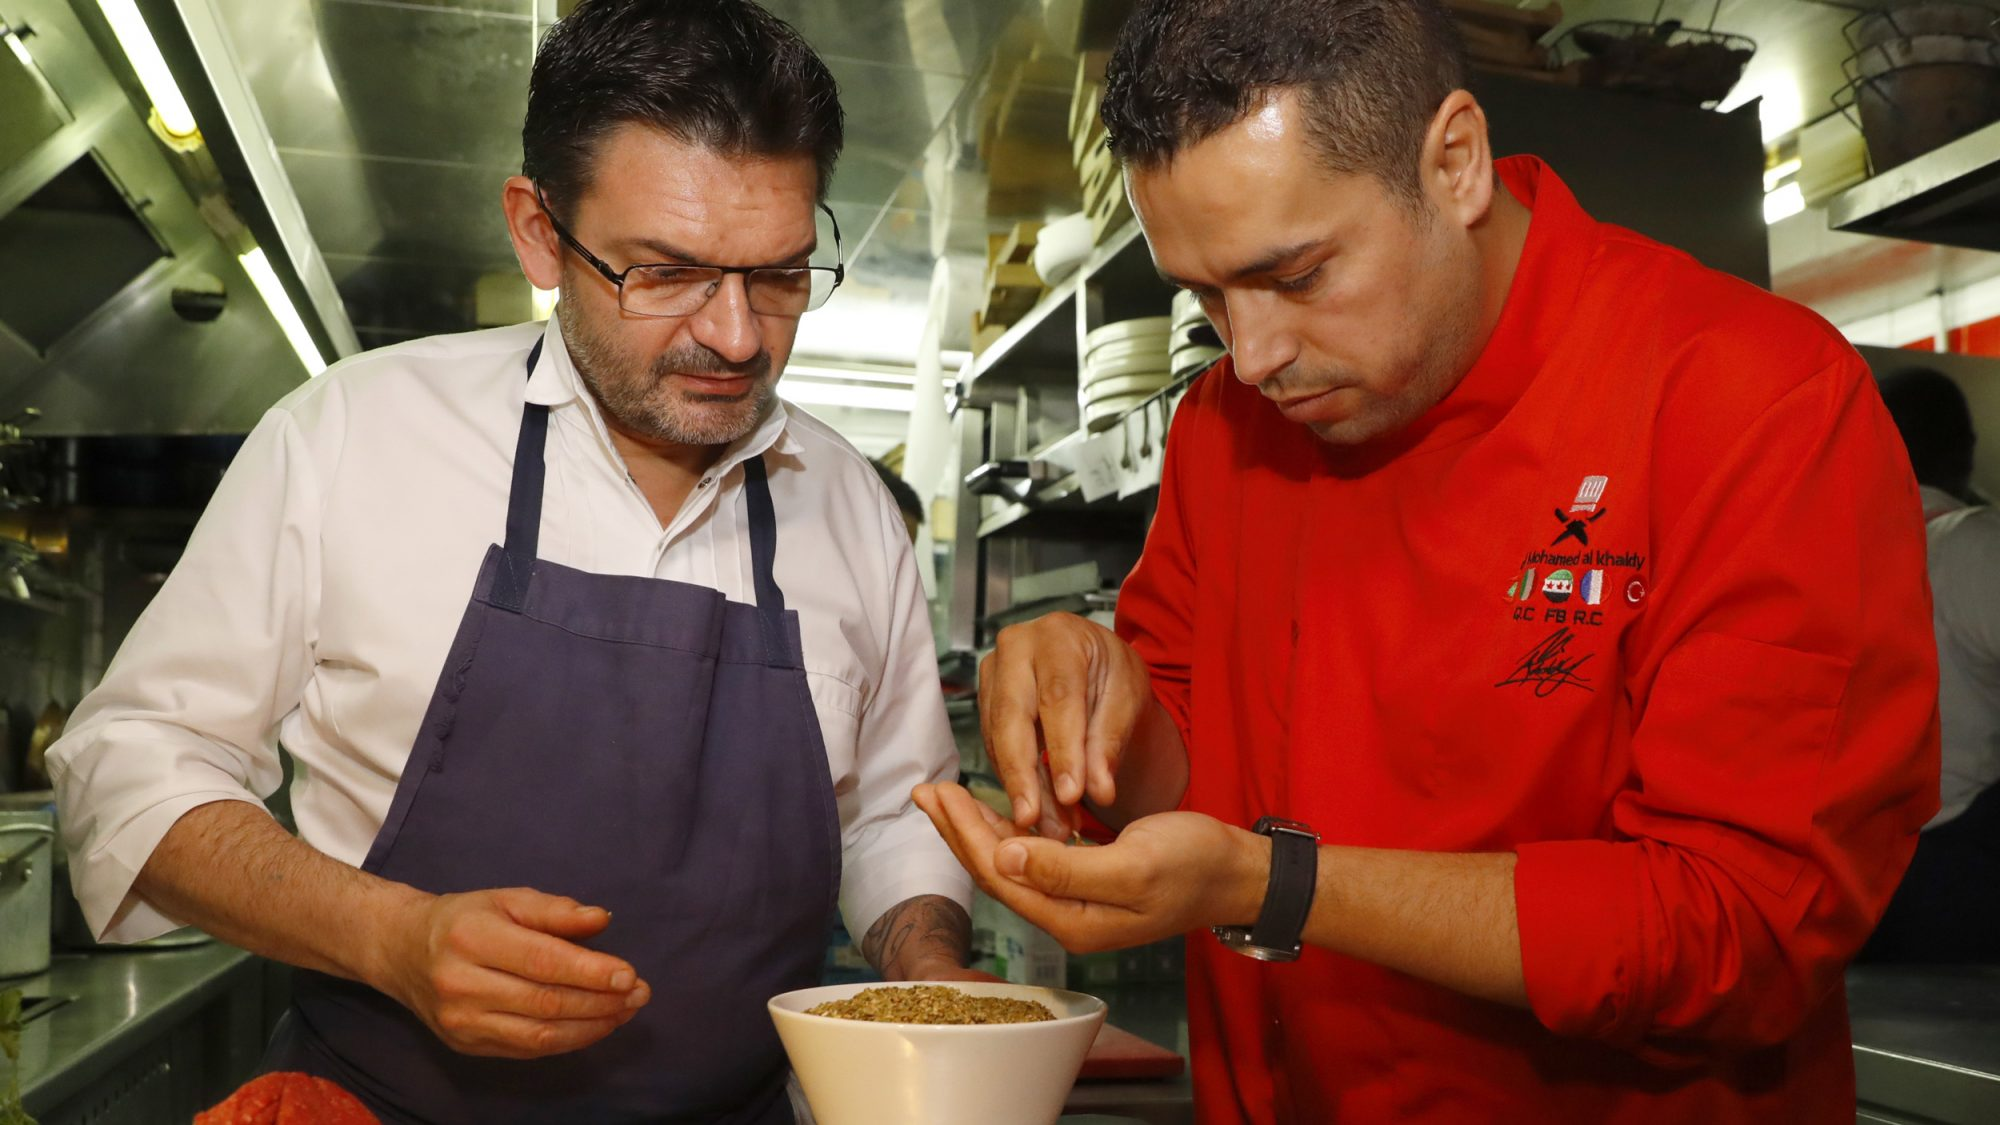 This French Organization Is Helping Refugees Through Food